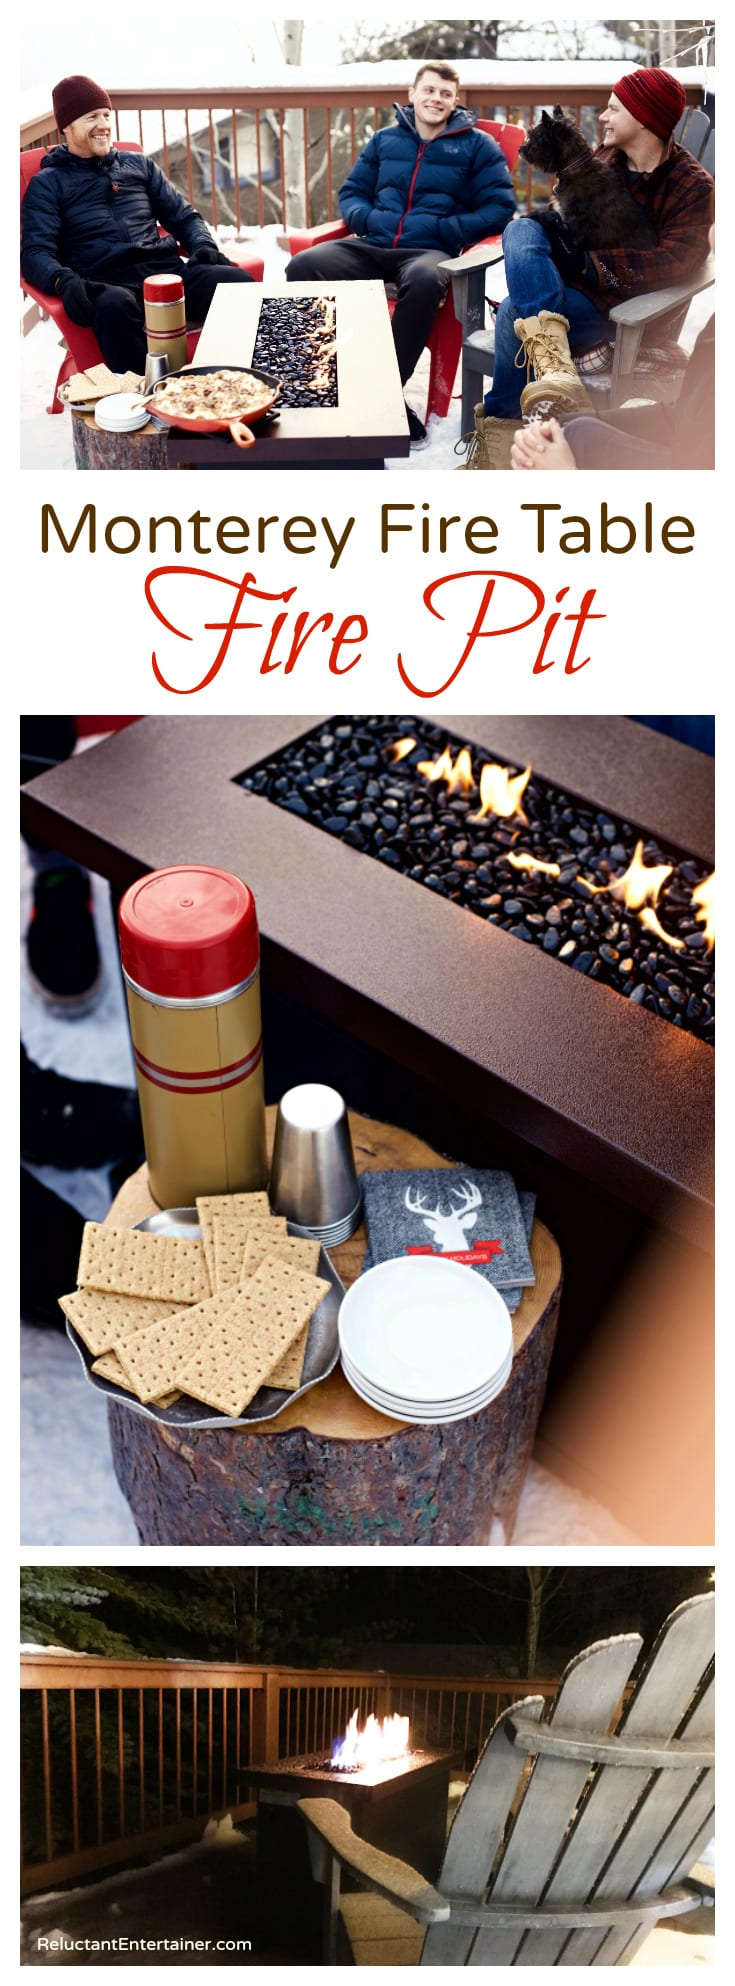 Monterey Fire Table with Skillet S'mores Recipe